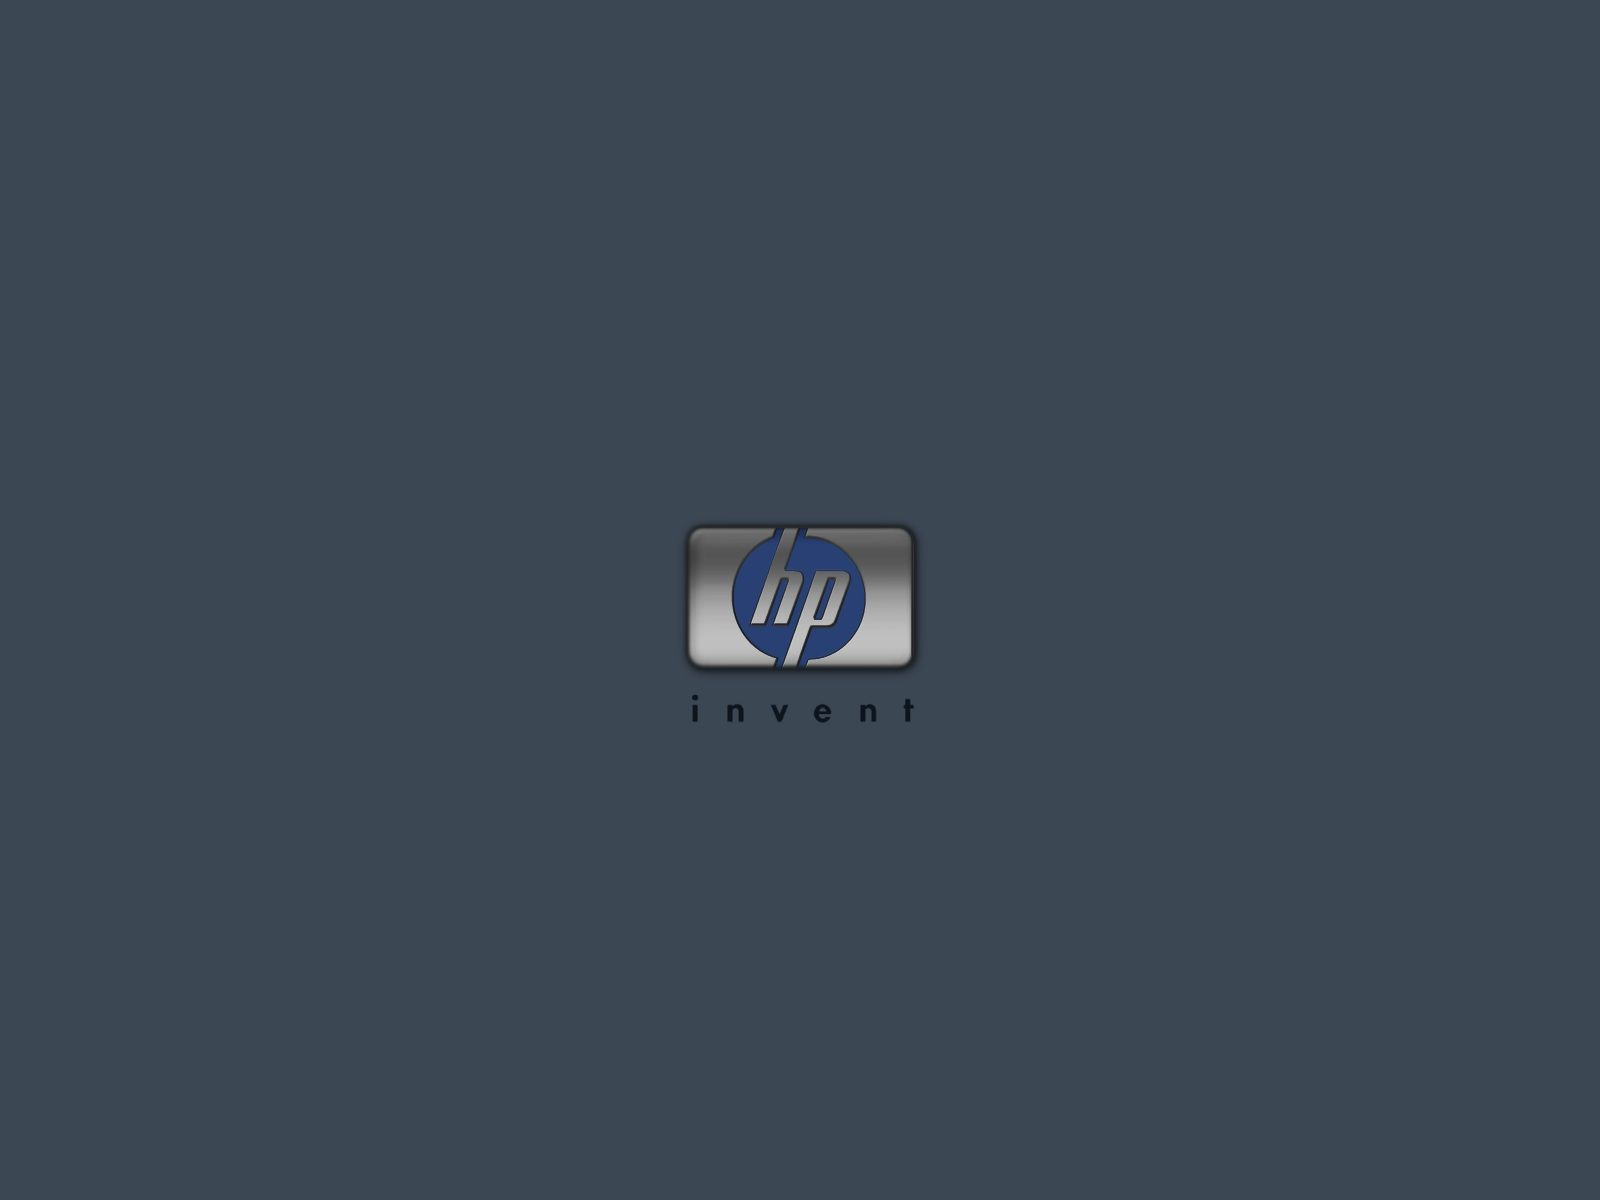 Hewlett-Packard HD Wallpapers